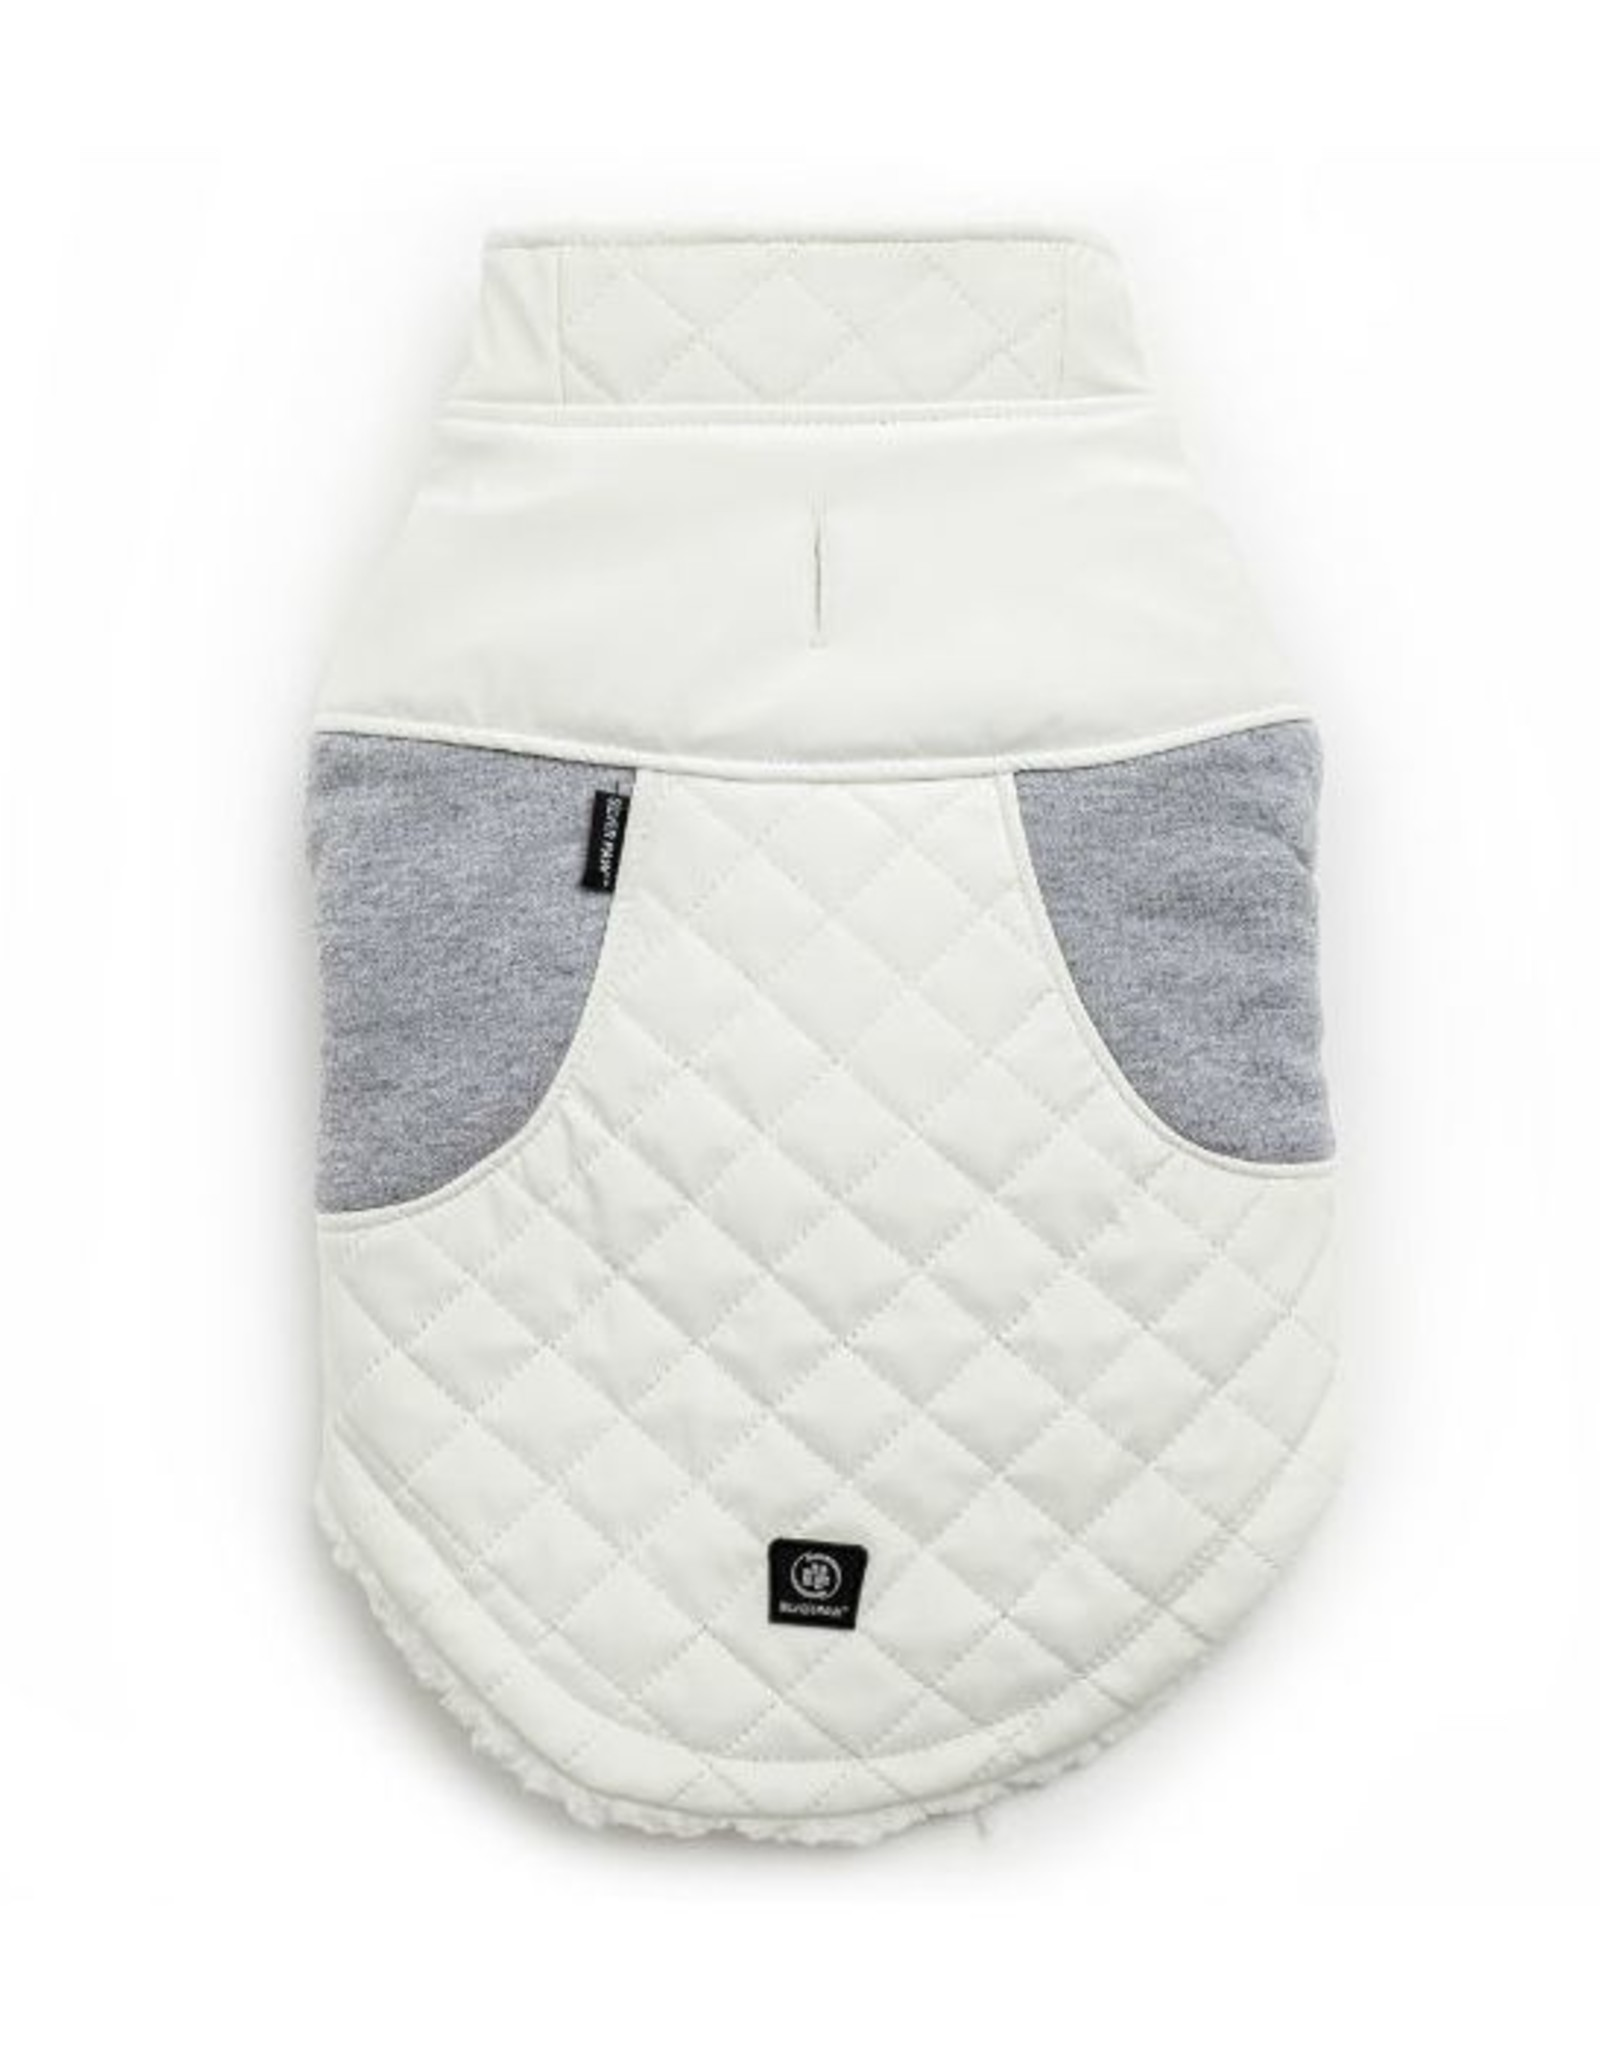 Silver Paw Silver Paw - Quilted Jacket Faux Leather White/Grey XS